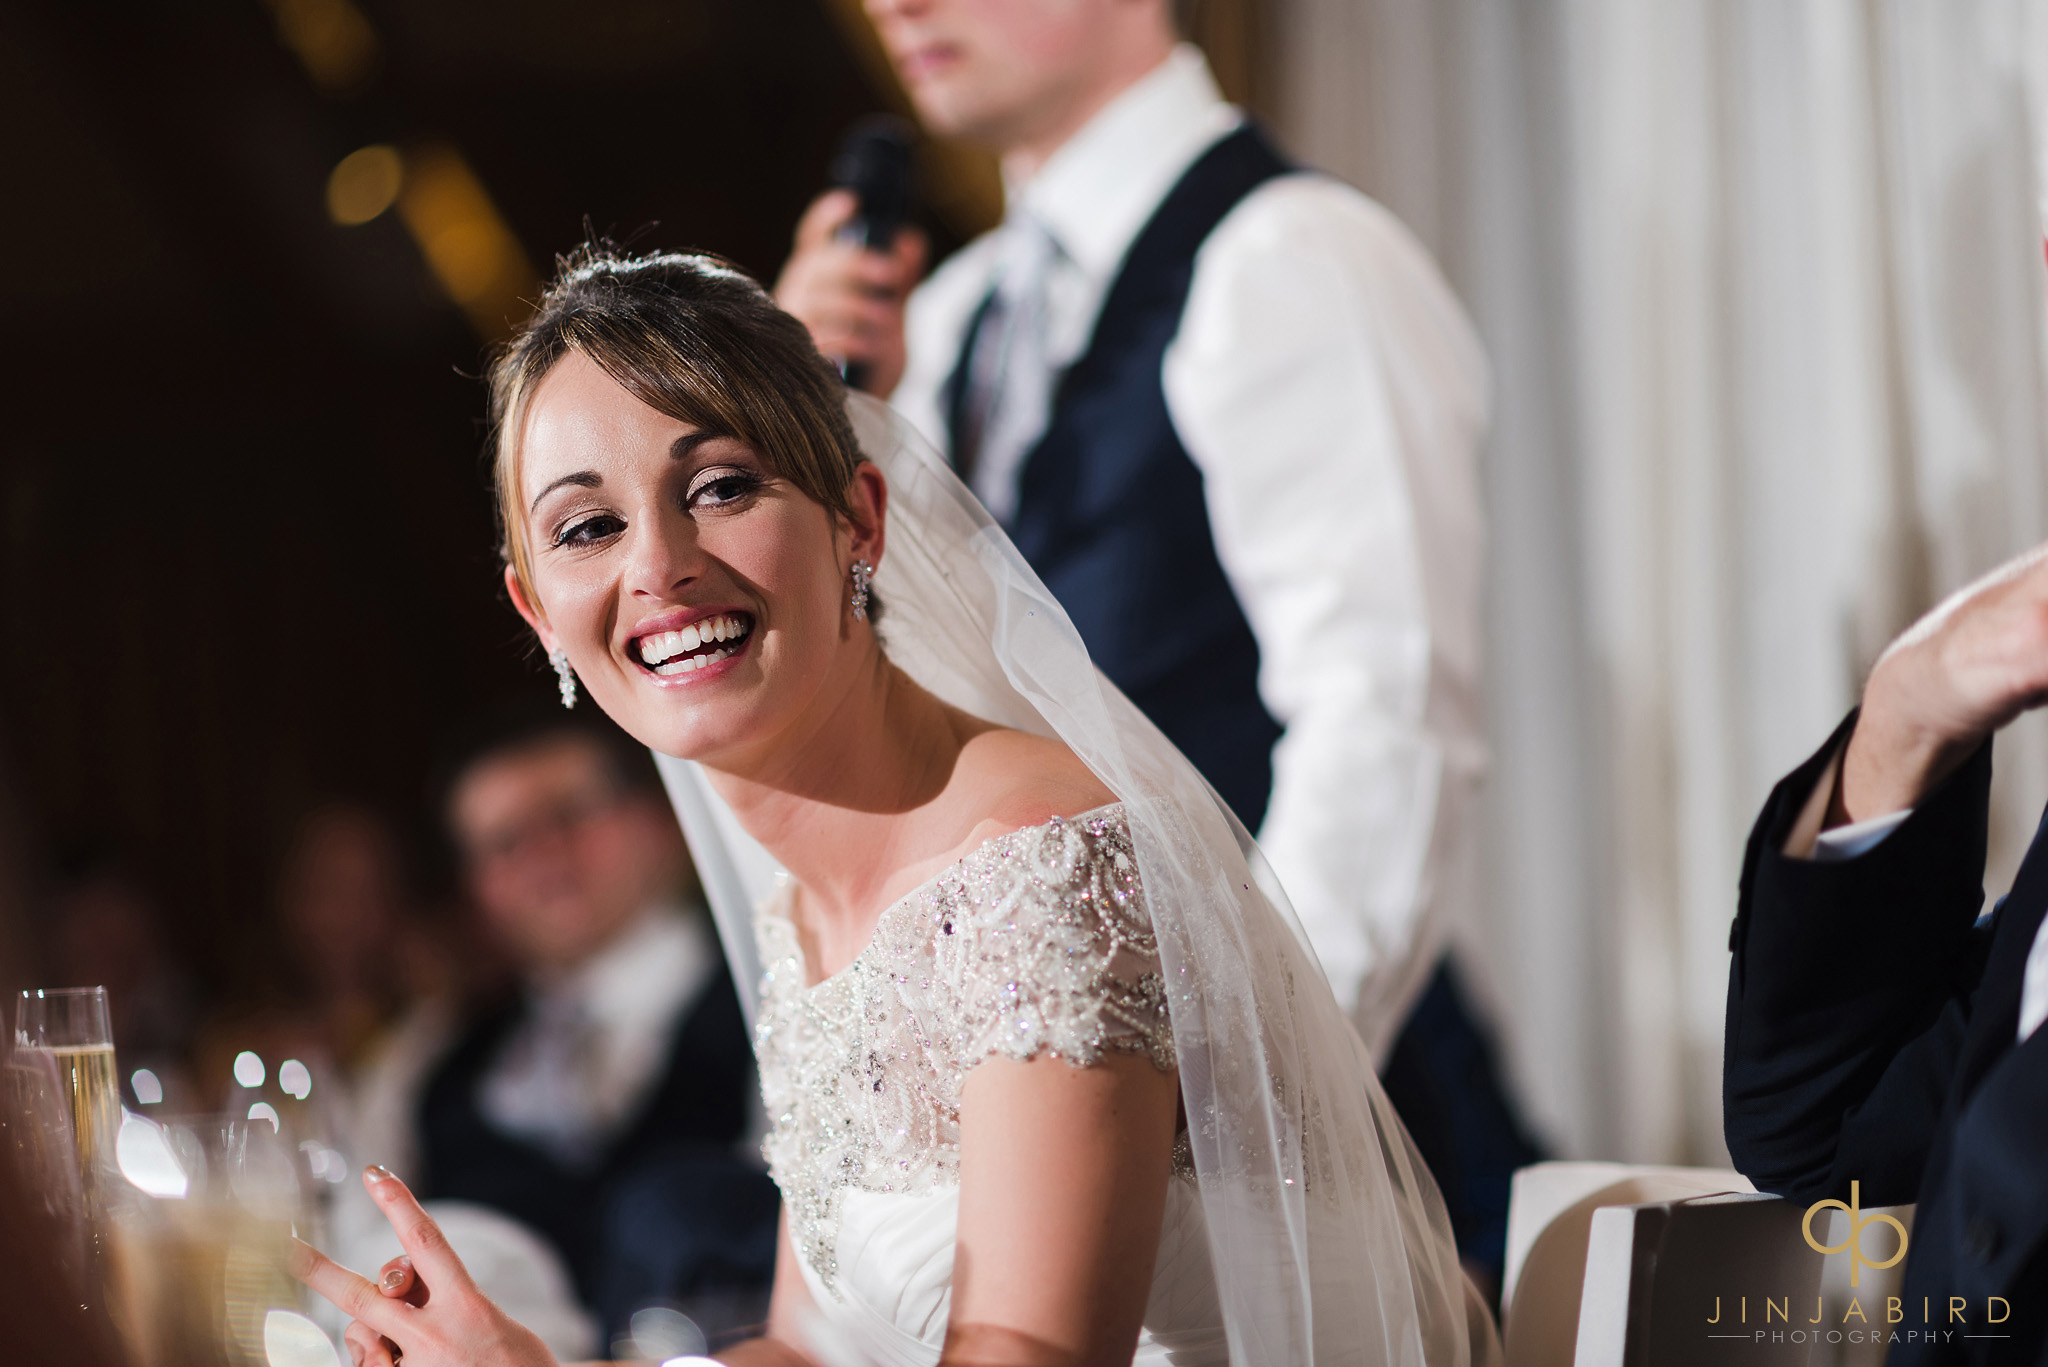 bride at top table during speeches